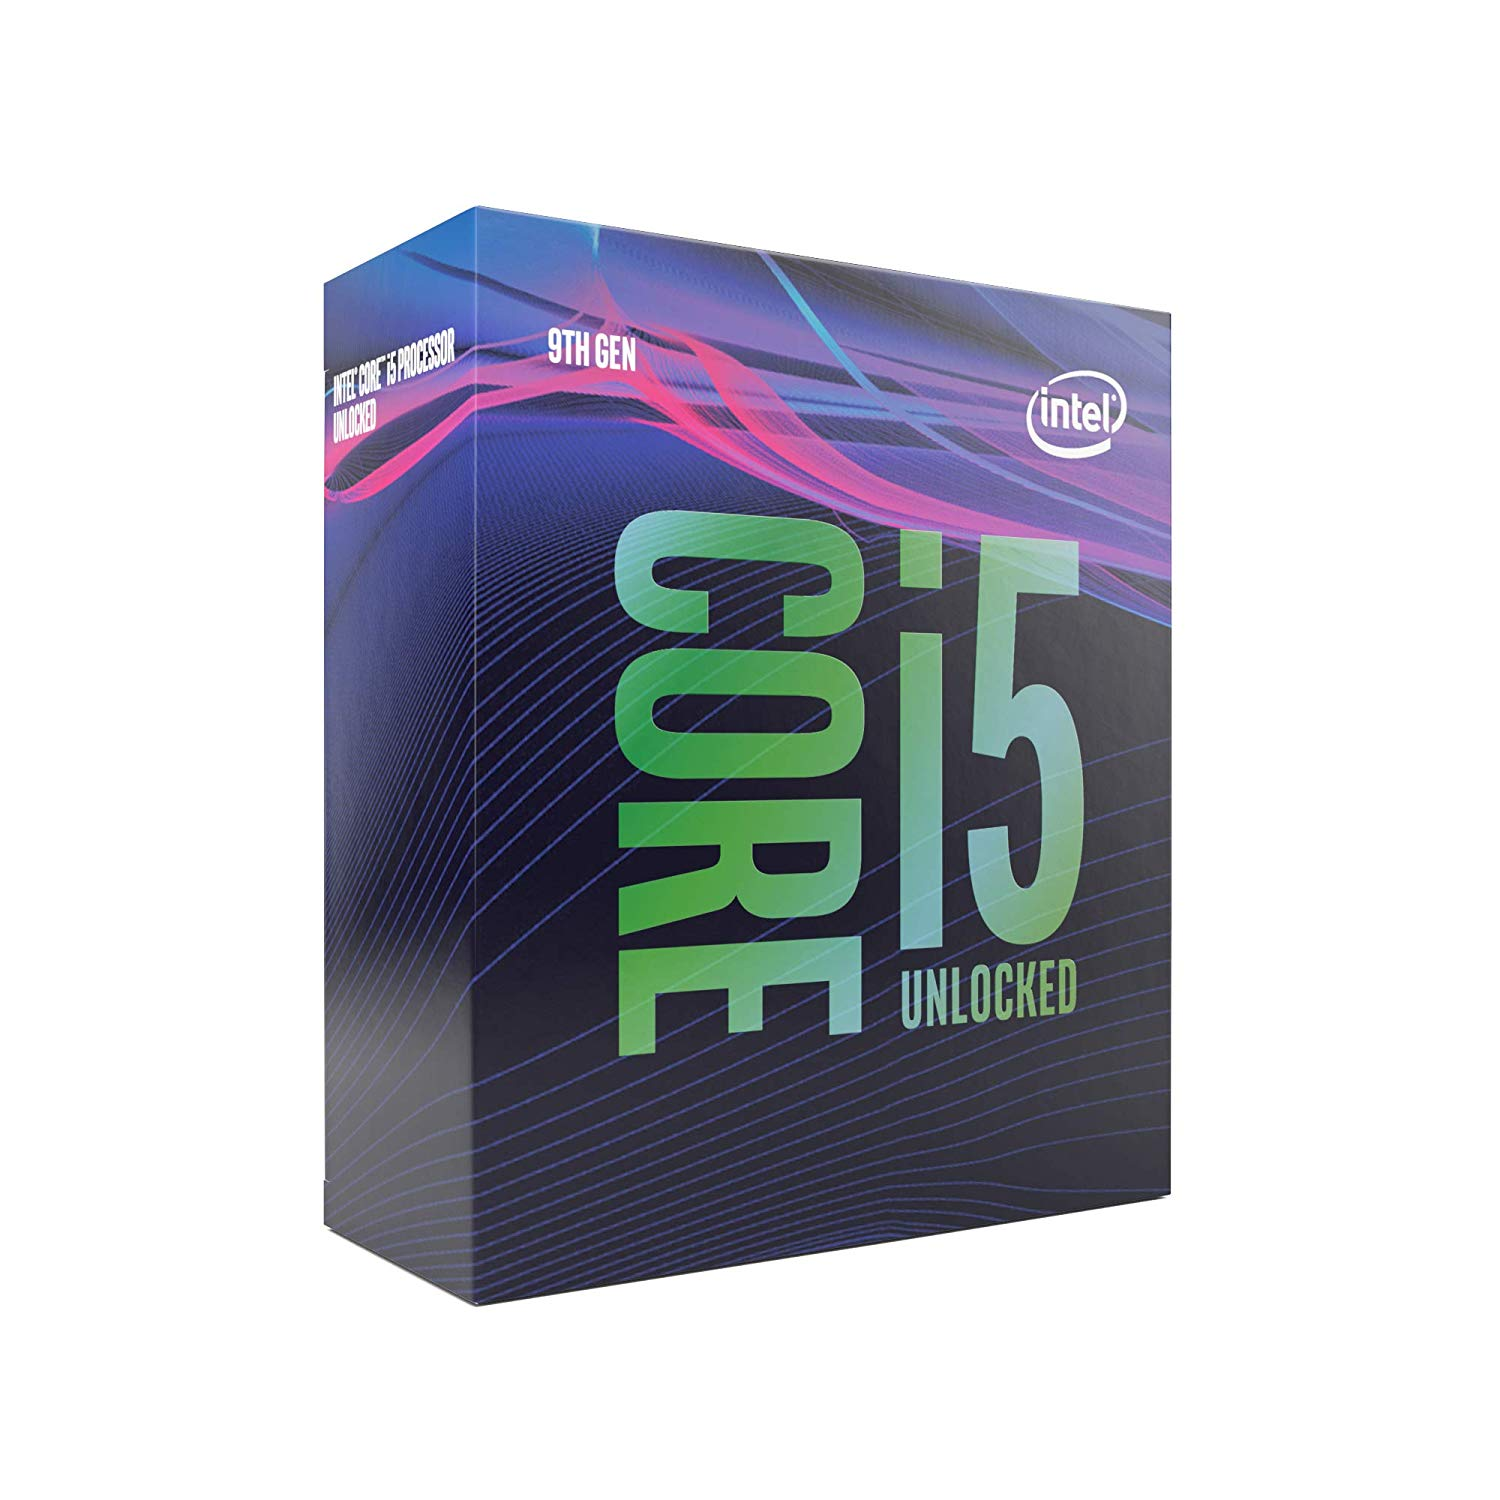 CPU Intel Core i5 9600K (Up to 4.60Ghz/ 9MB cache) 6 Cores, 6 Threads/ Socket 1151/ Coffee Lake